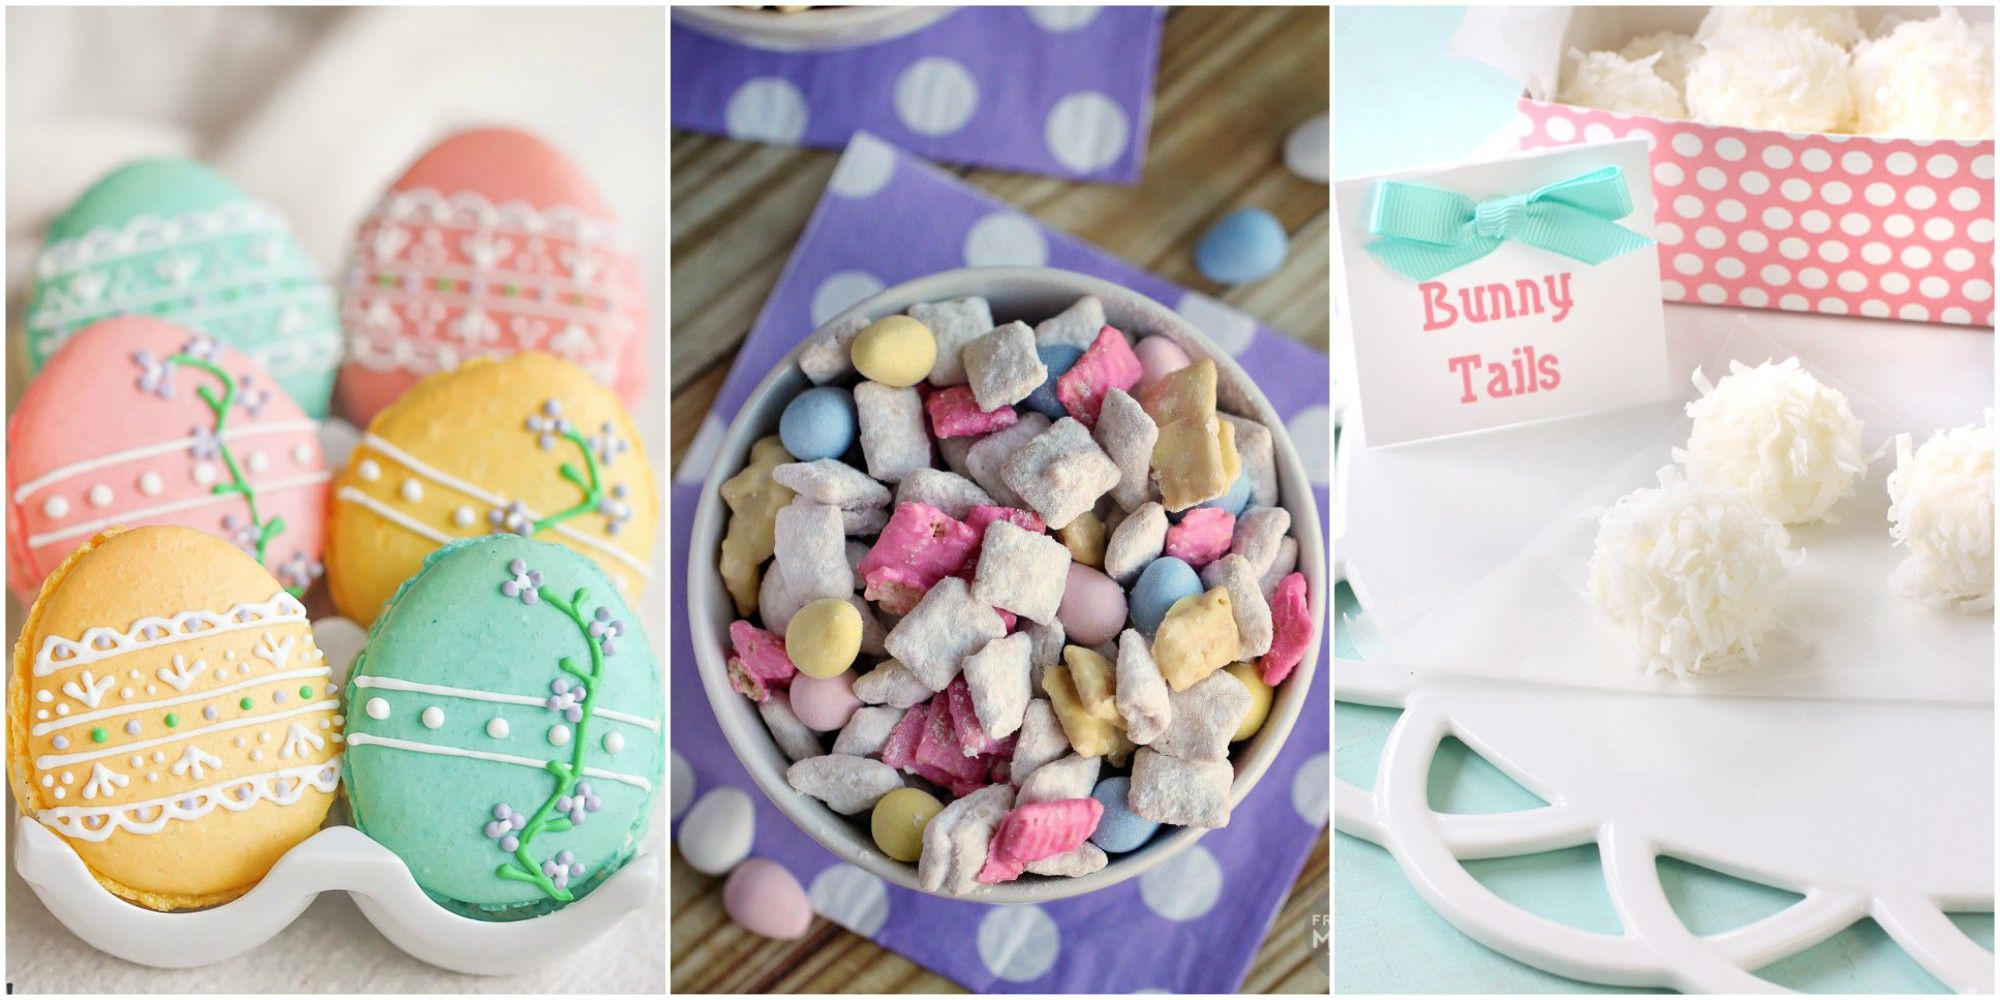 picture How to Make an Easter Treat Without Sugar